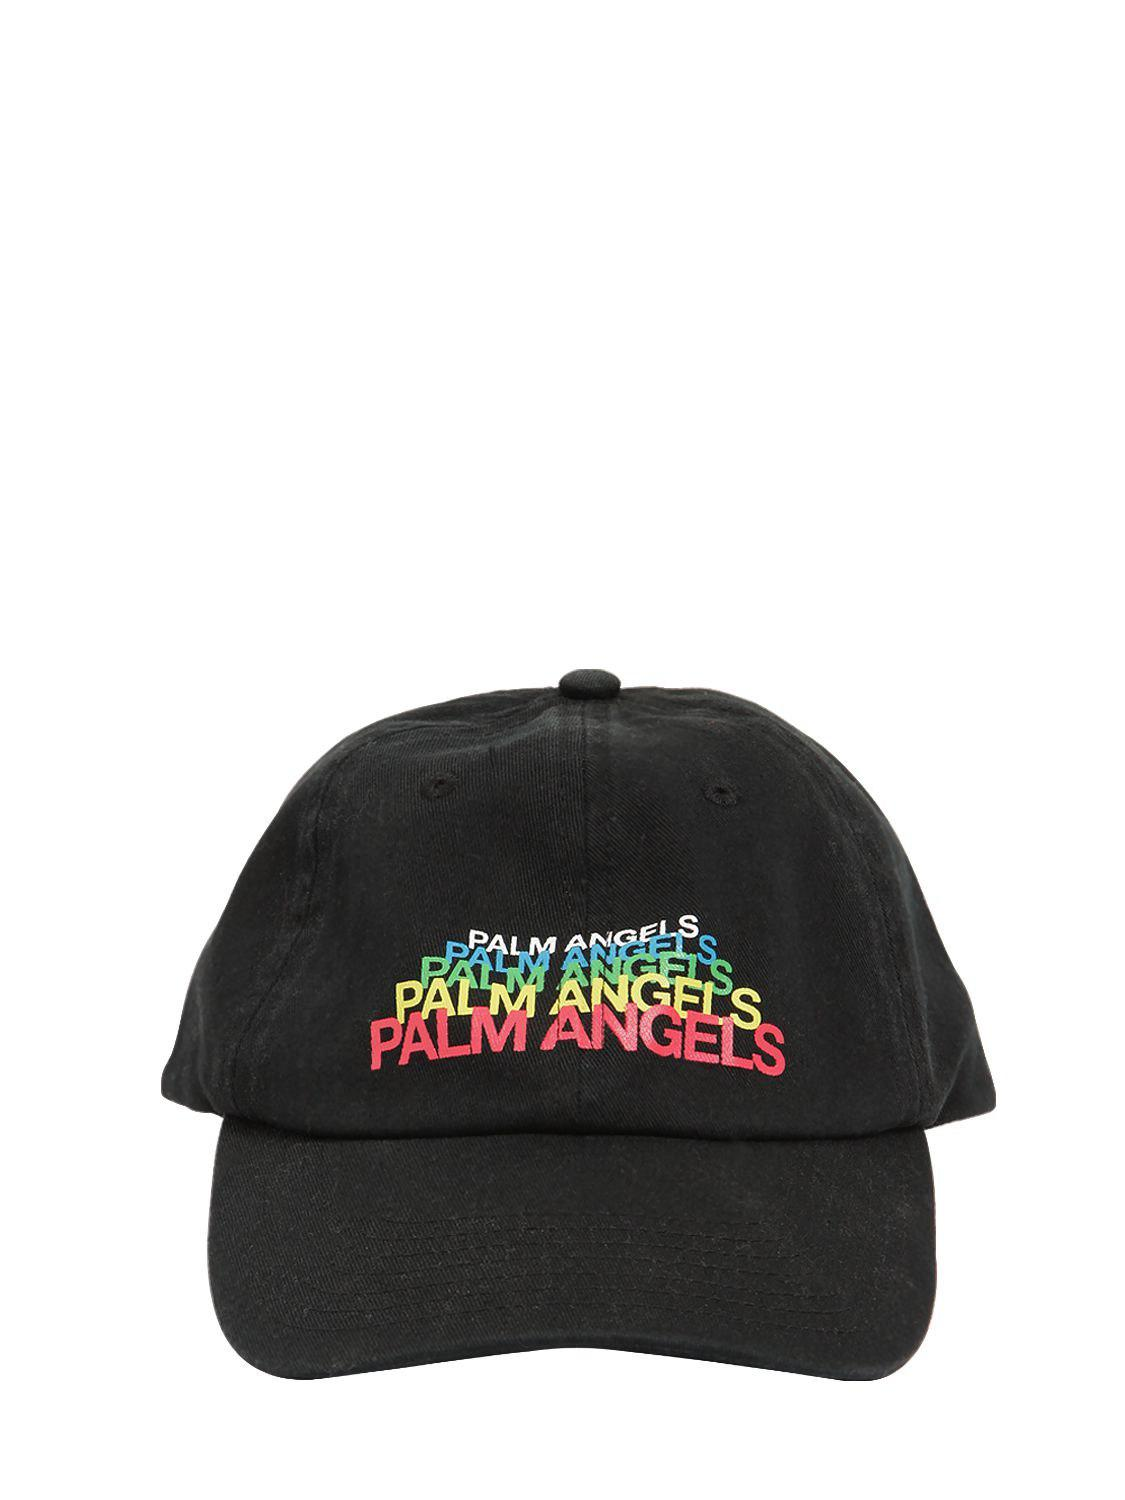 12c6ae65542 Palm Angels Embroidered Cotton Canvas Baseball Hat in Black for Men ...